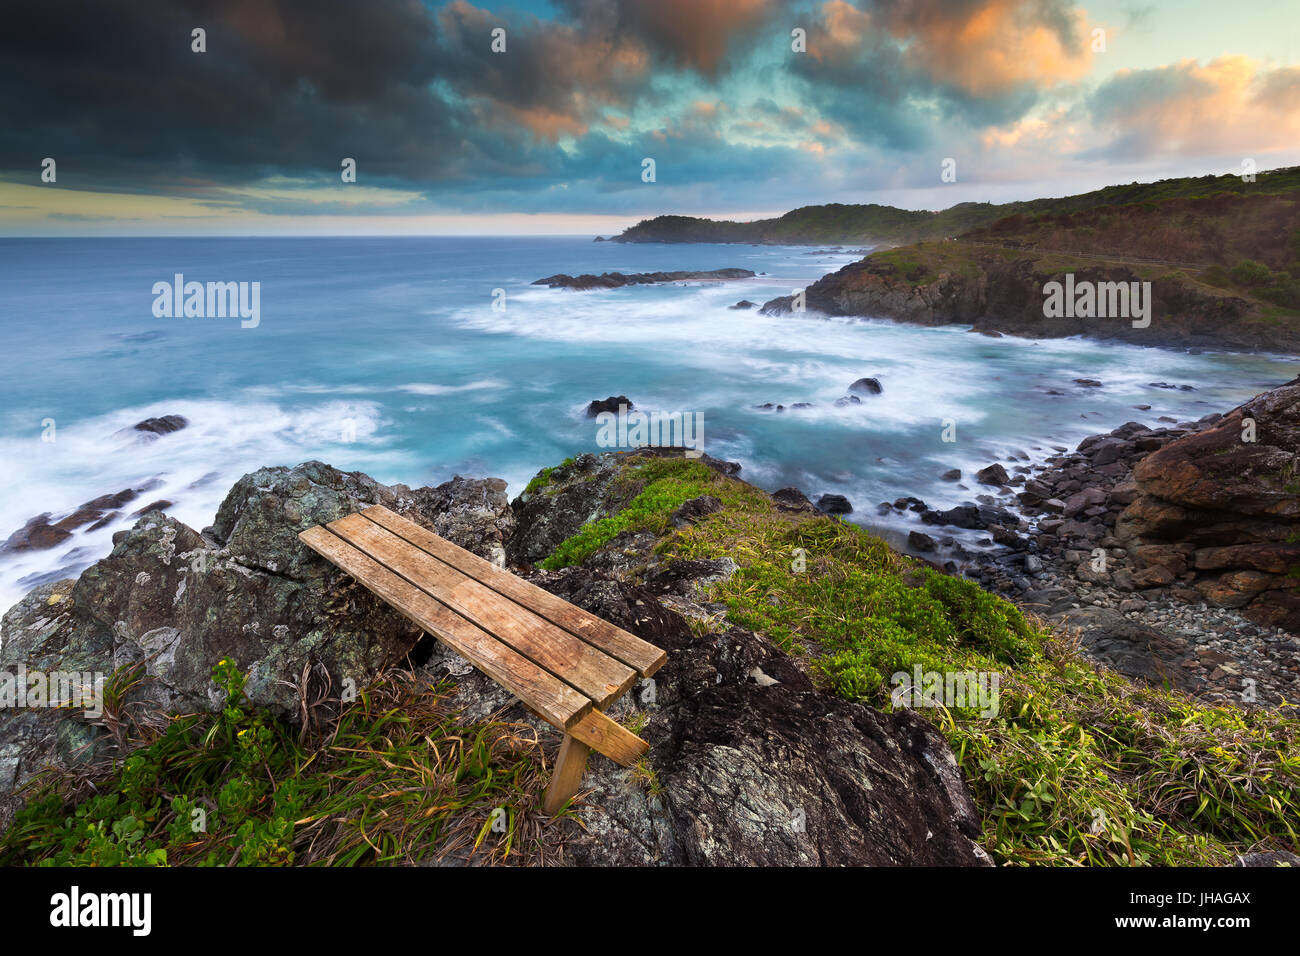 An empty wooden bench with a view over a beautiful rocky coastline at sunset in Australia. Stock Photo